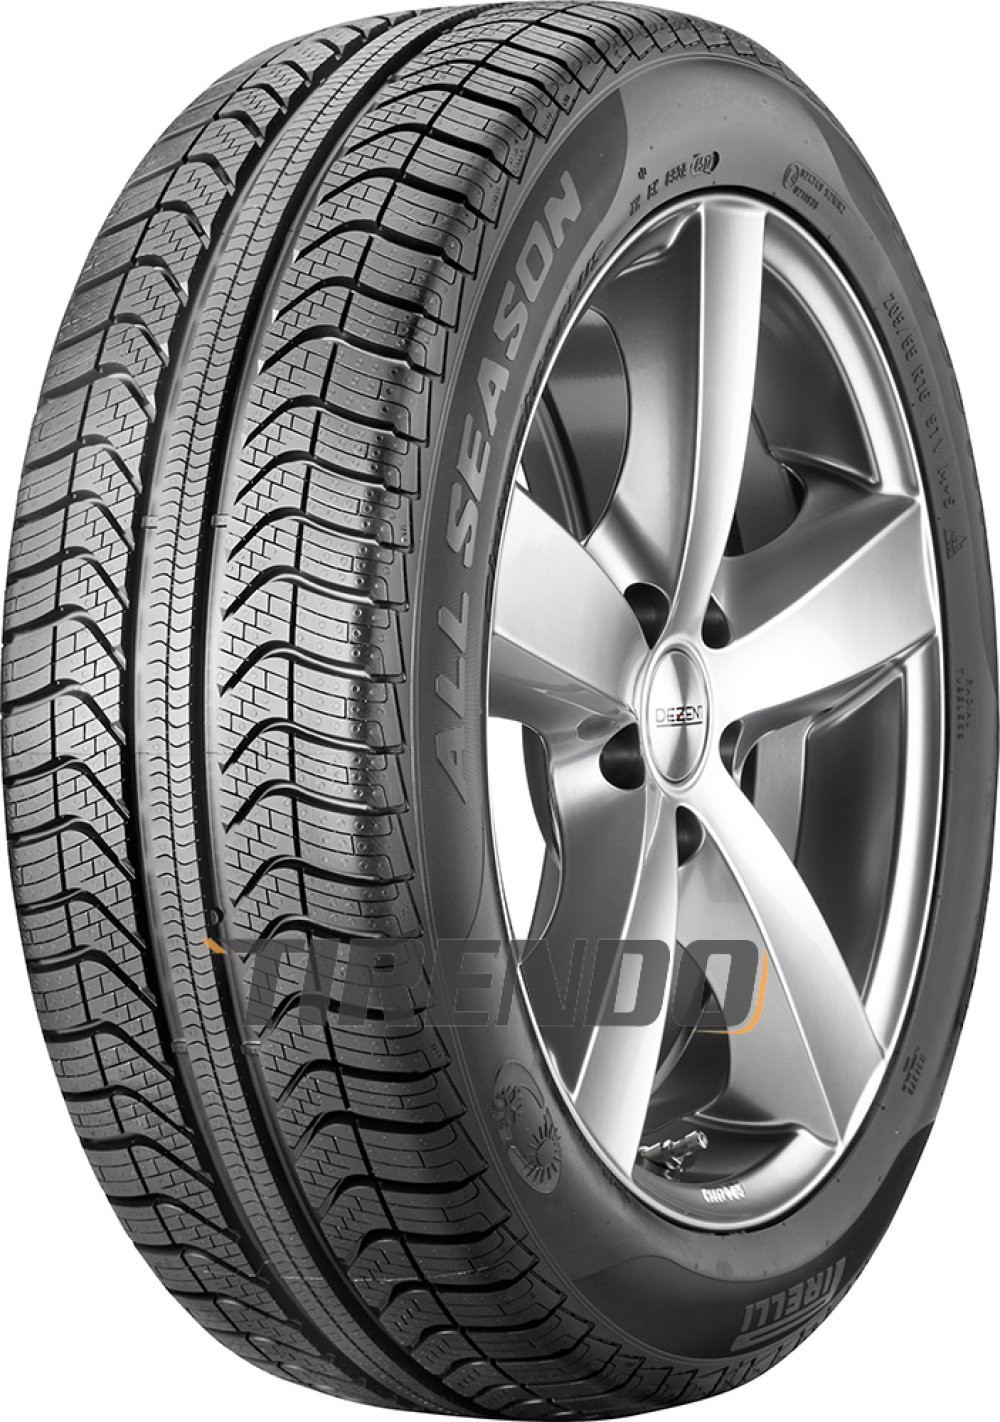 Pirelli Cinturato All Season Plus 225/55R19 99V